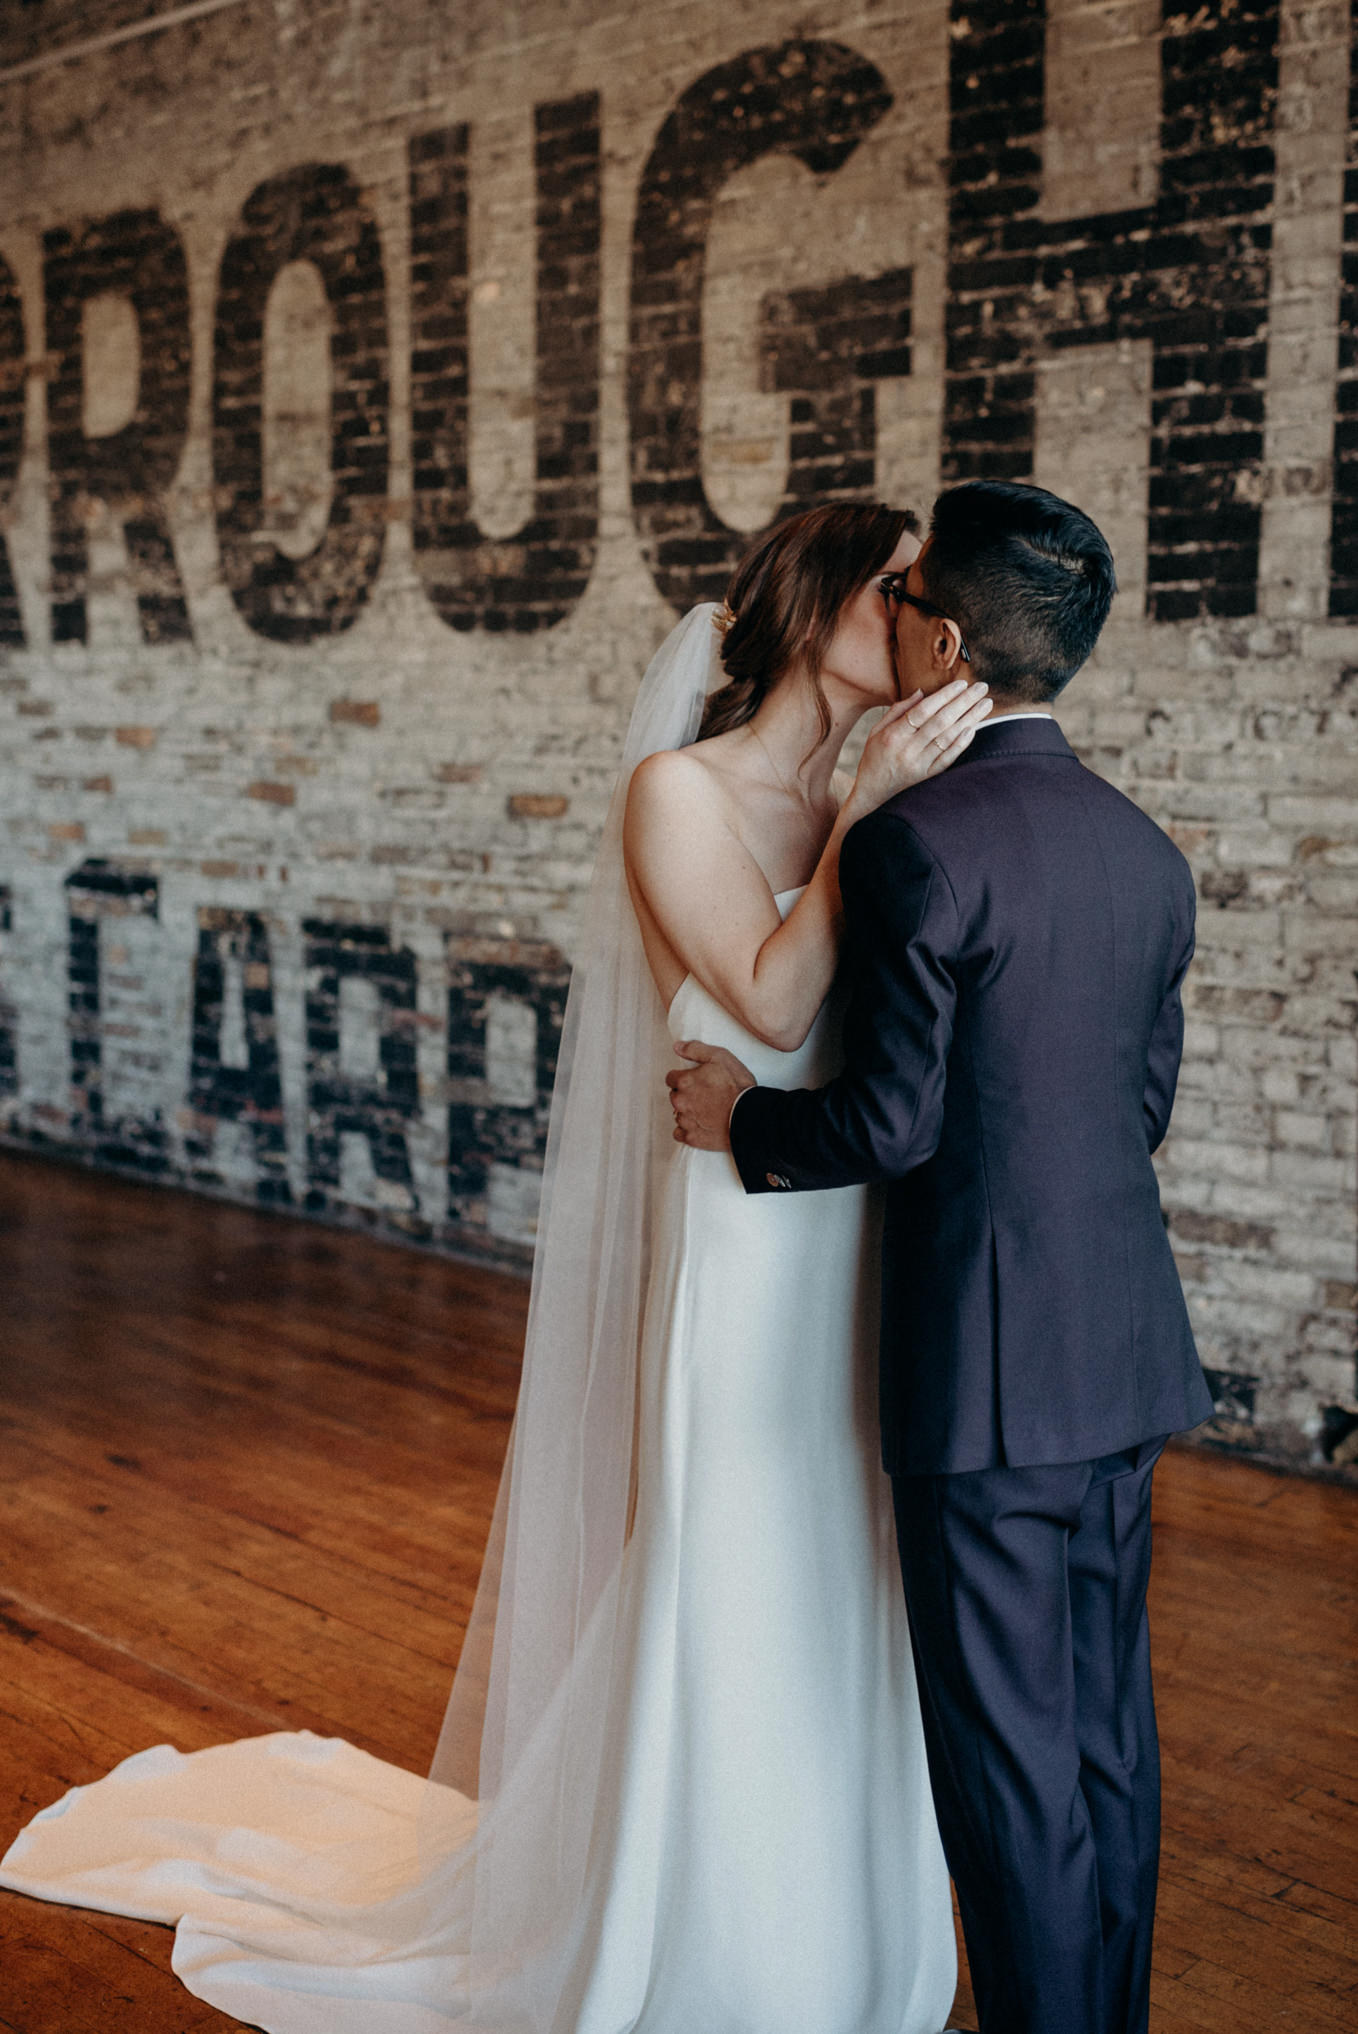 First kiss, midweek elopement at The Burroughes